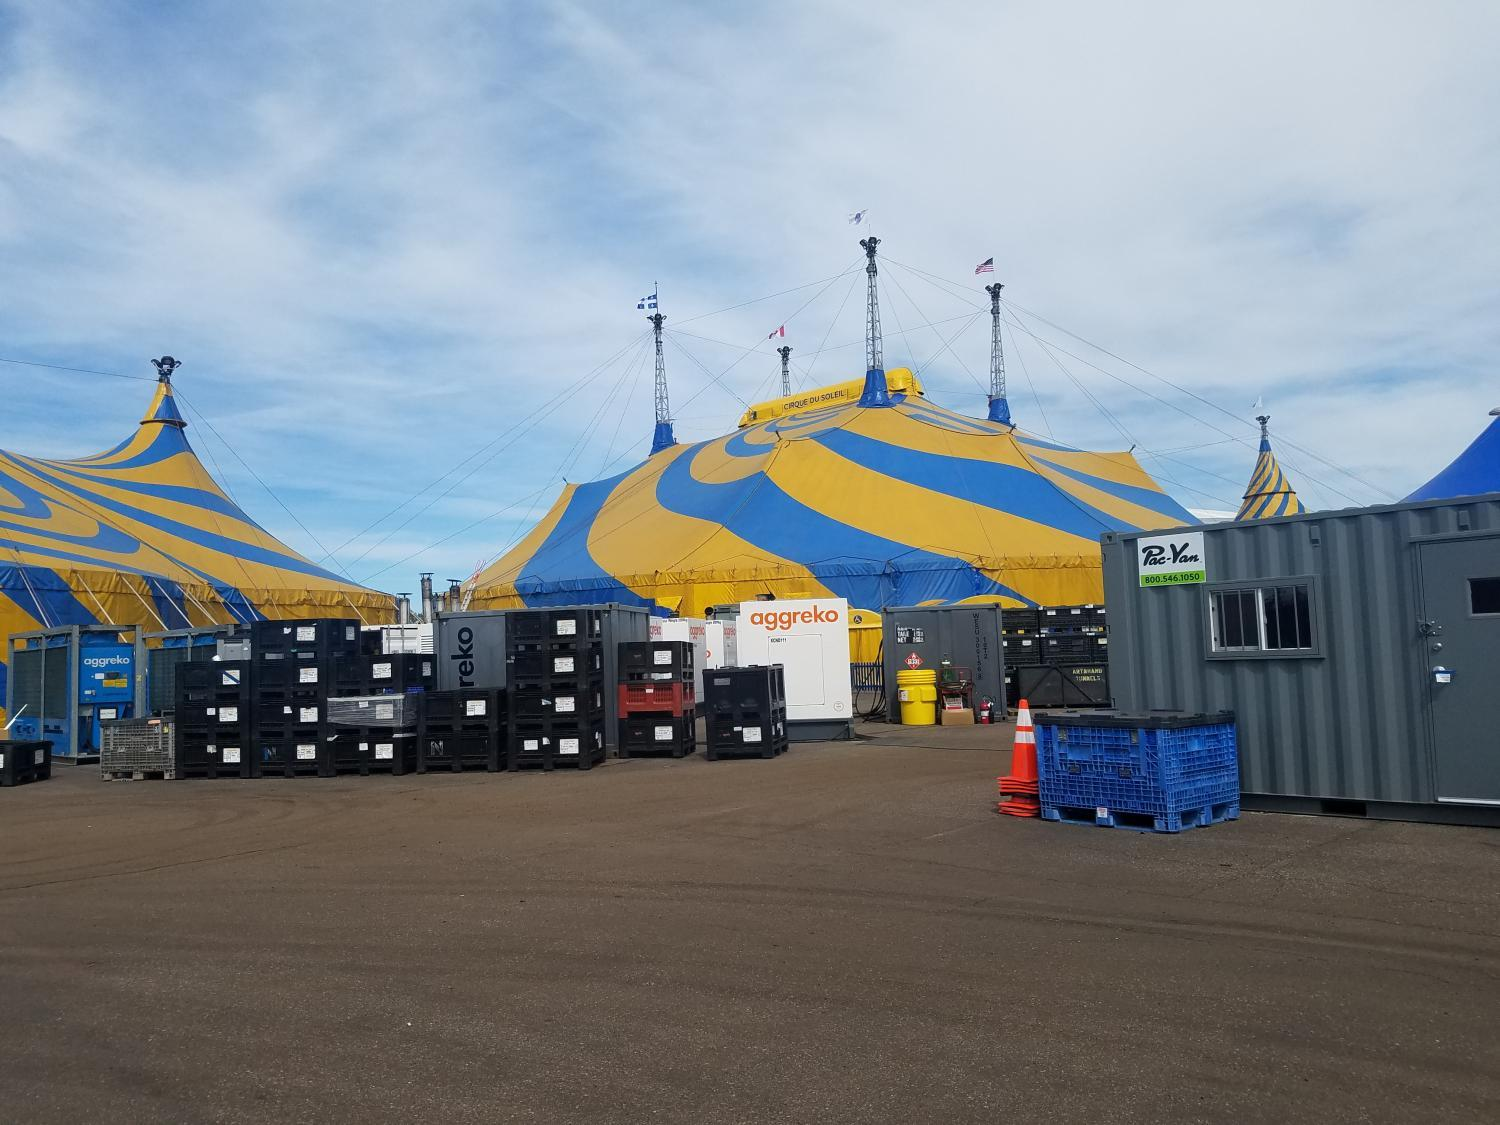 The show happens under a giant blue and yellow tent, which is set up in each new city.